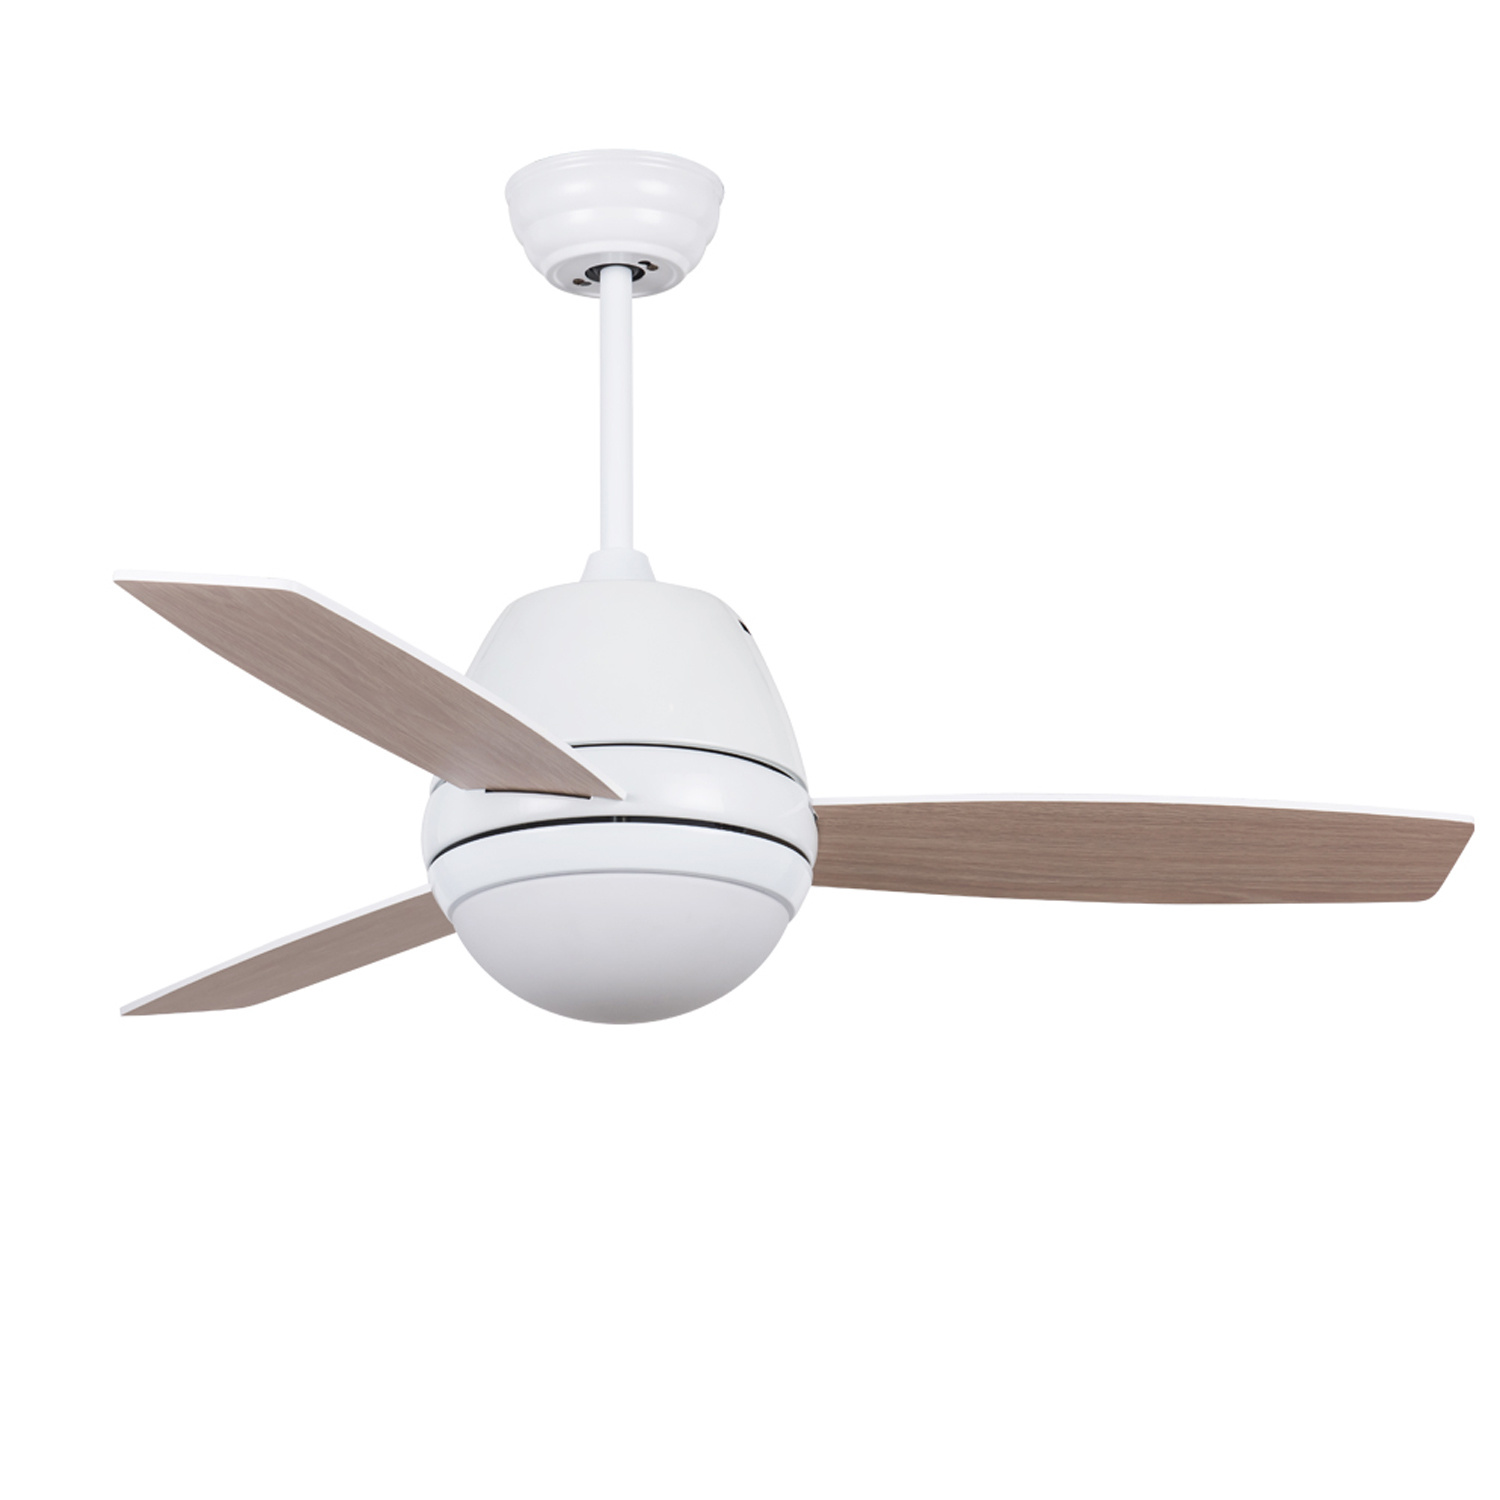 China Small Size Kids Room Bedroom Department Use Led Light Ceiling Fan China Small Size Ceiling Fan Light And Led Ceiling Fan With Light Price